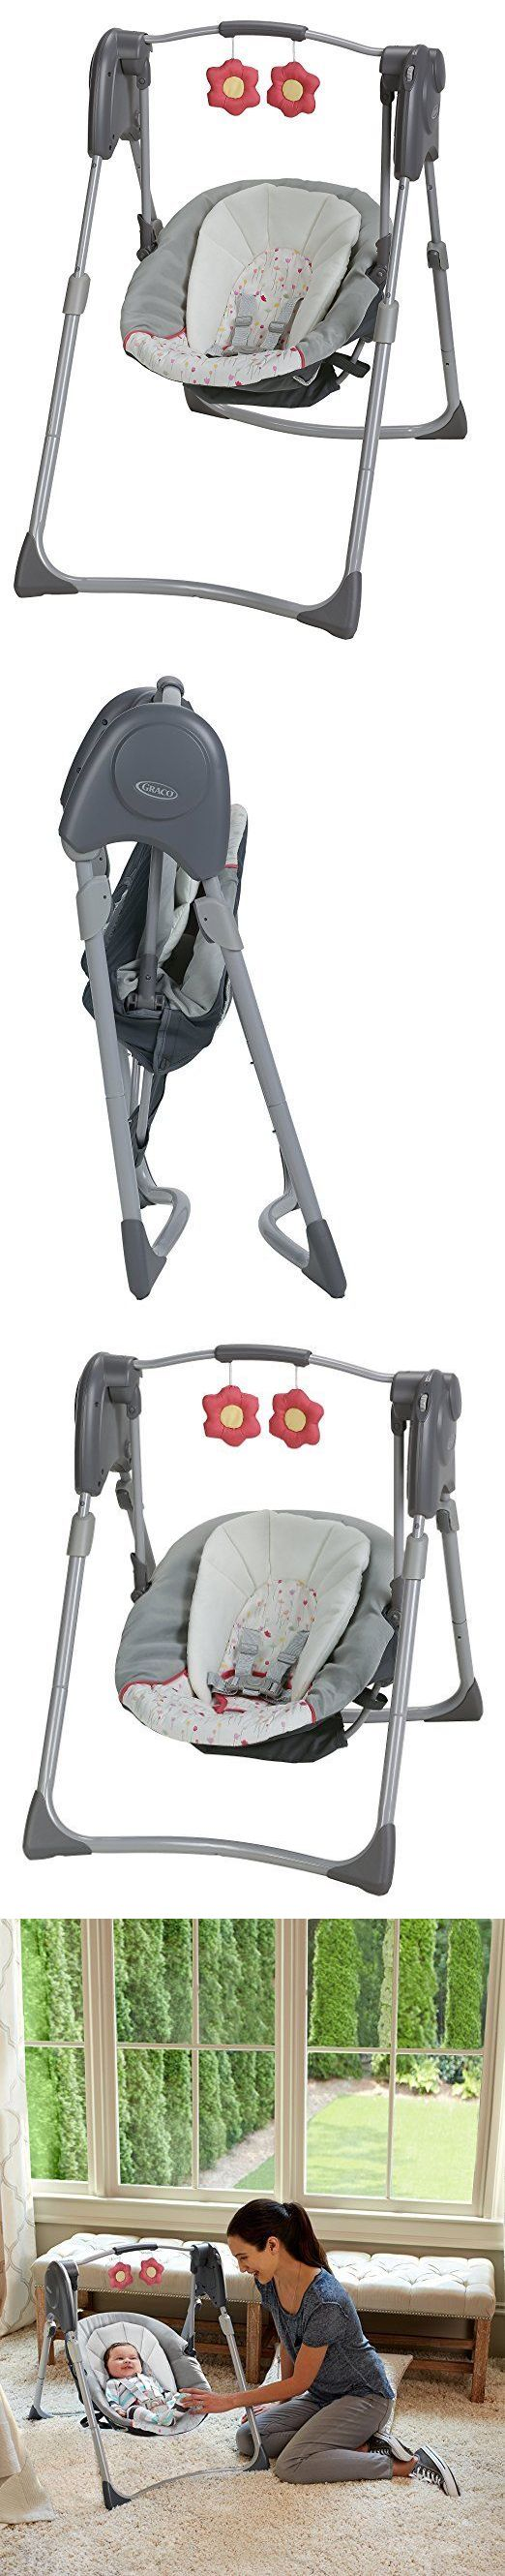 Baby Swings 2990: Graco Slim Spaces Compact Baby Swing Alma -> BUY IT NOW ONLY: $69.9 on eBay!